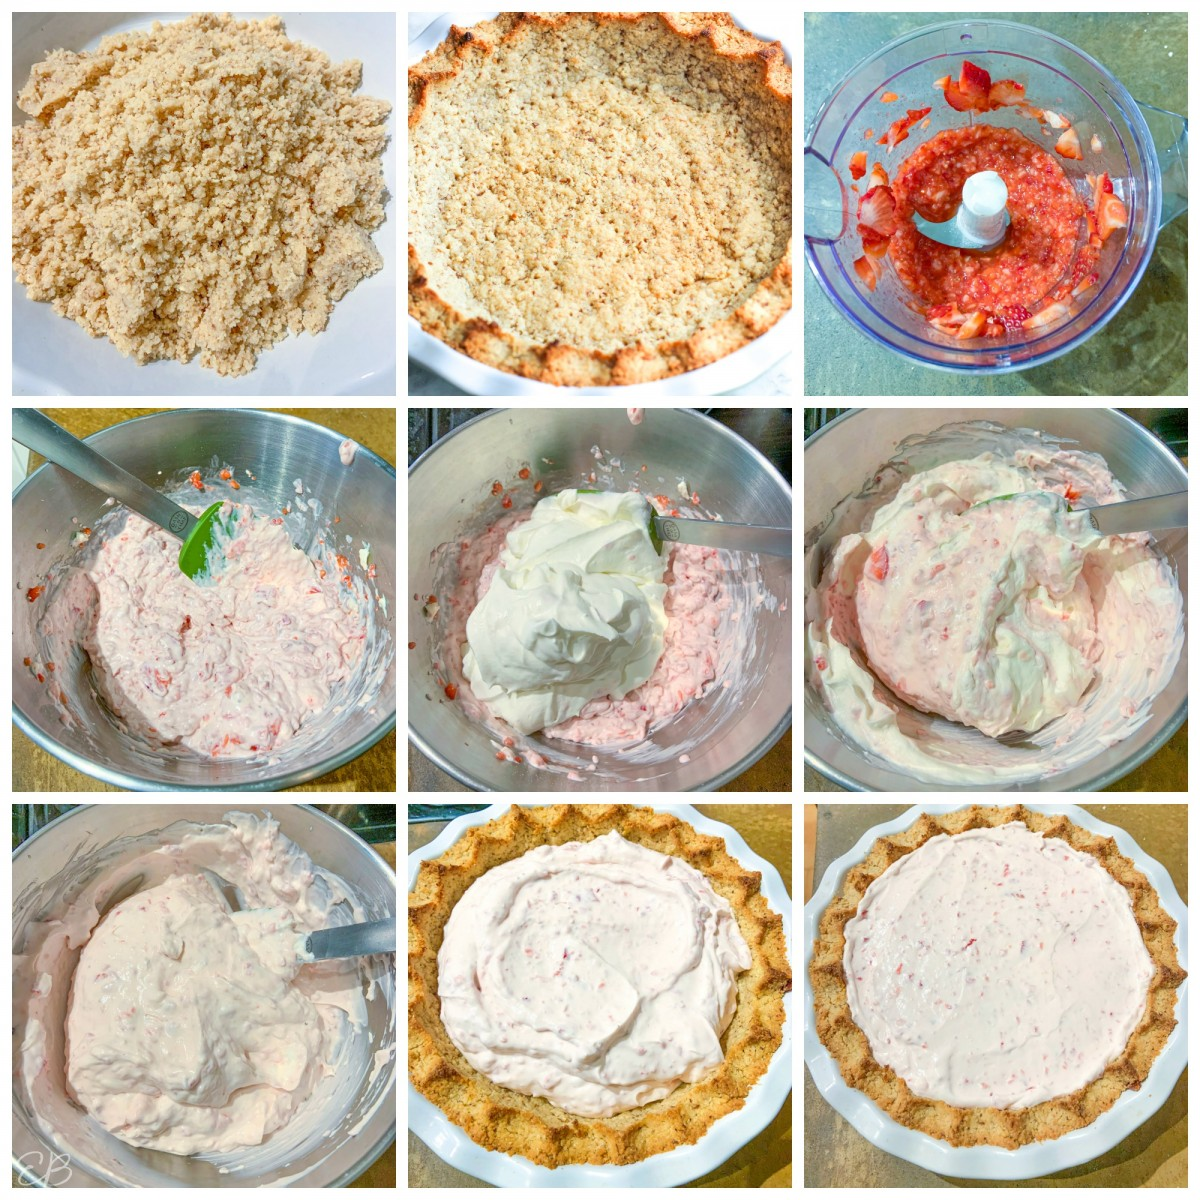 9 process photos of cream pie